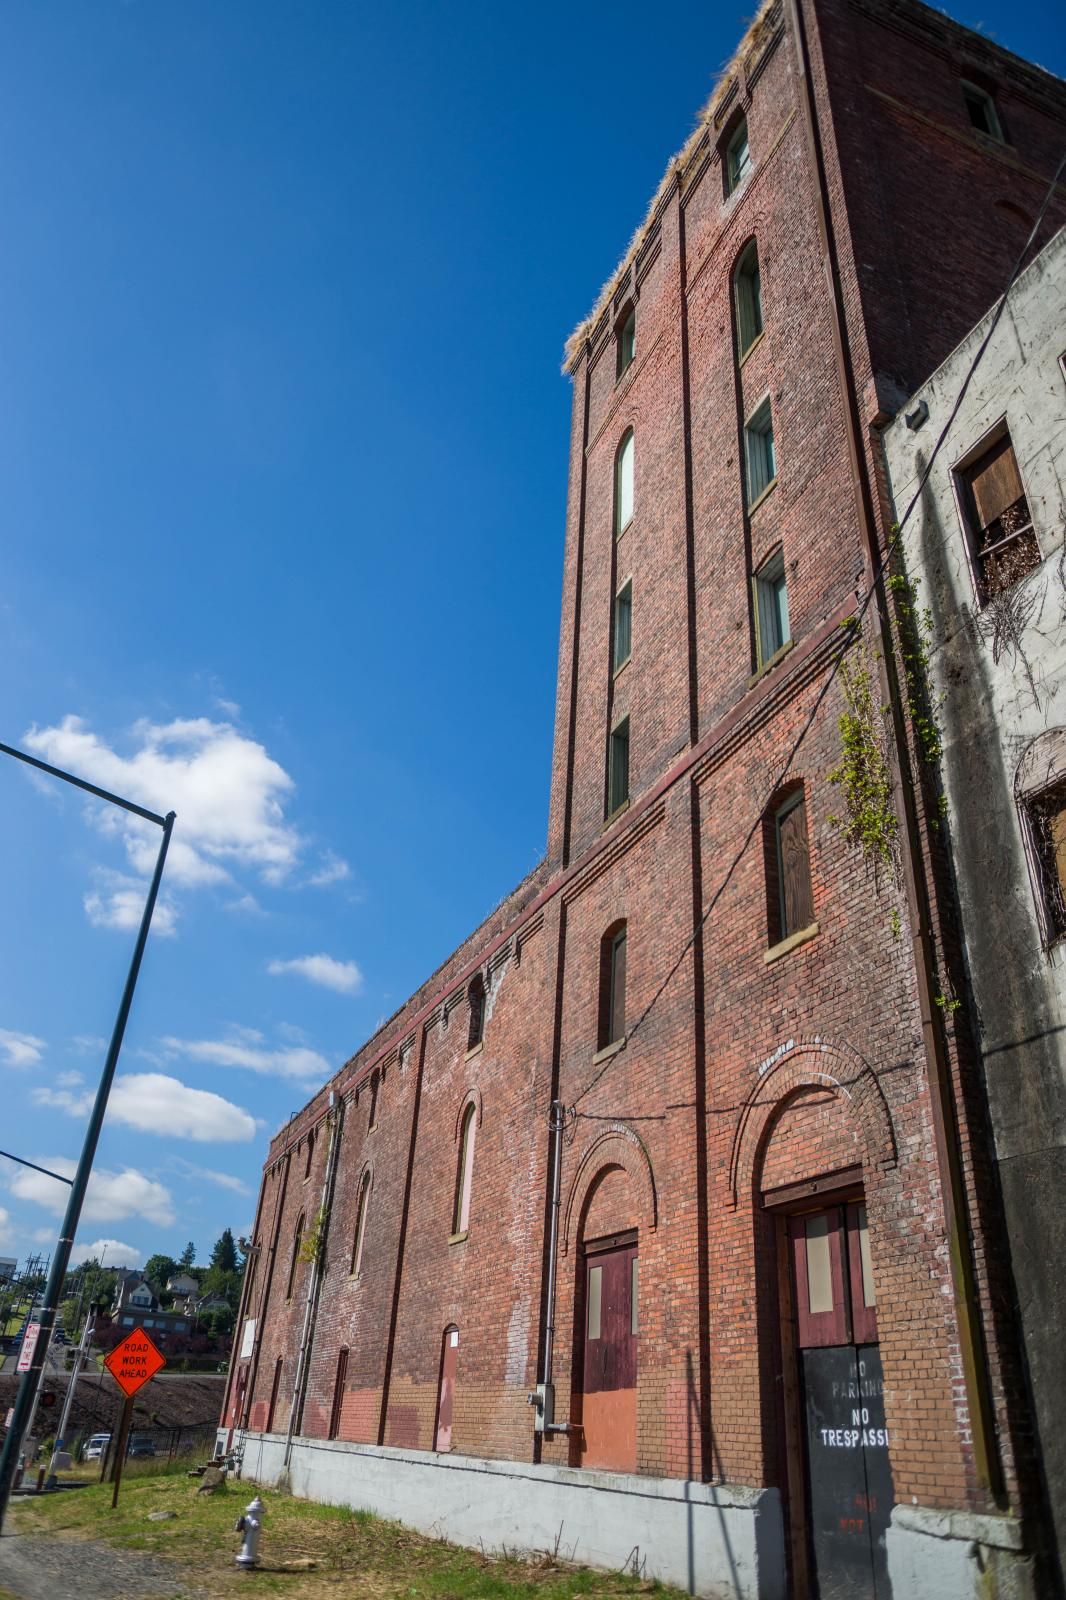 Image showing the Puget Sound Brewing warehouse and brick tower